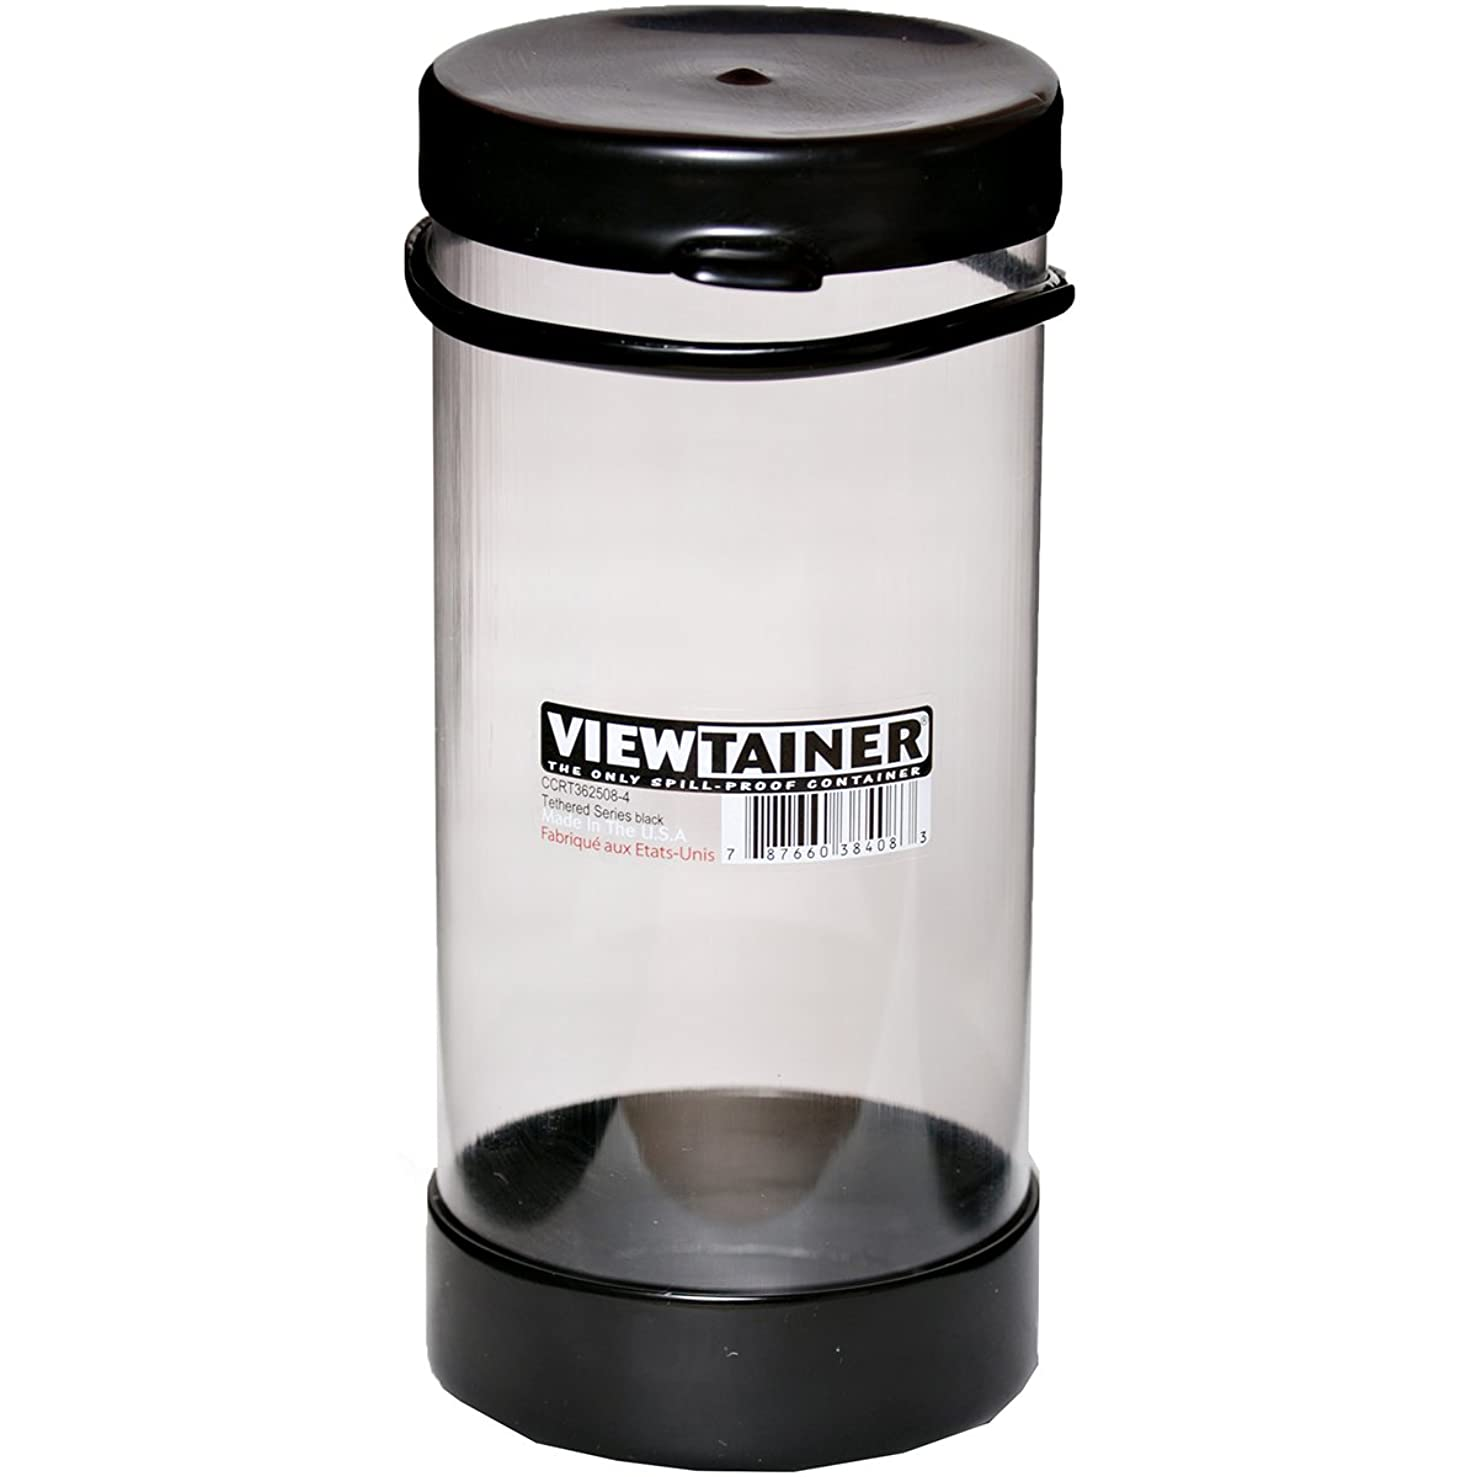 Viewtainer CCRT362508-4 Black Tethered Cap Storage Container, 2.75